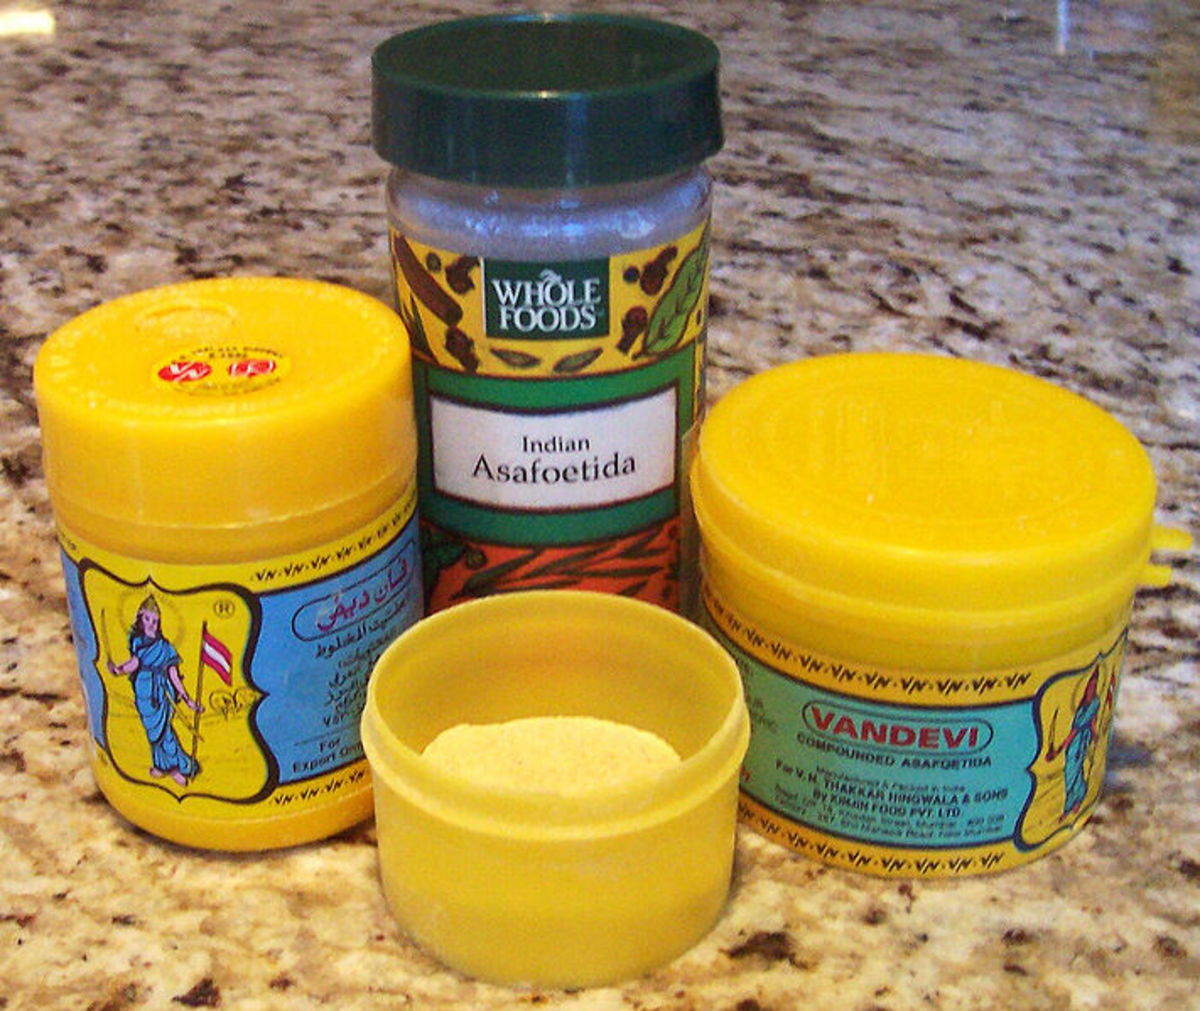 asafoetida powder in the forefront